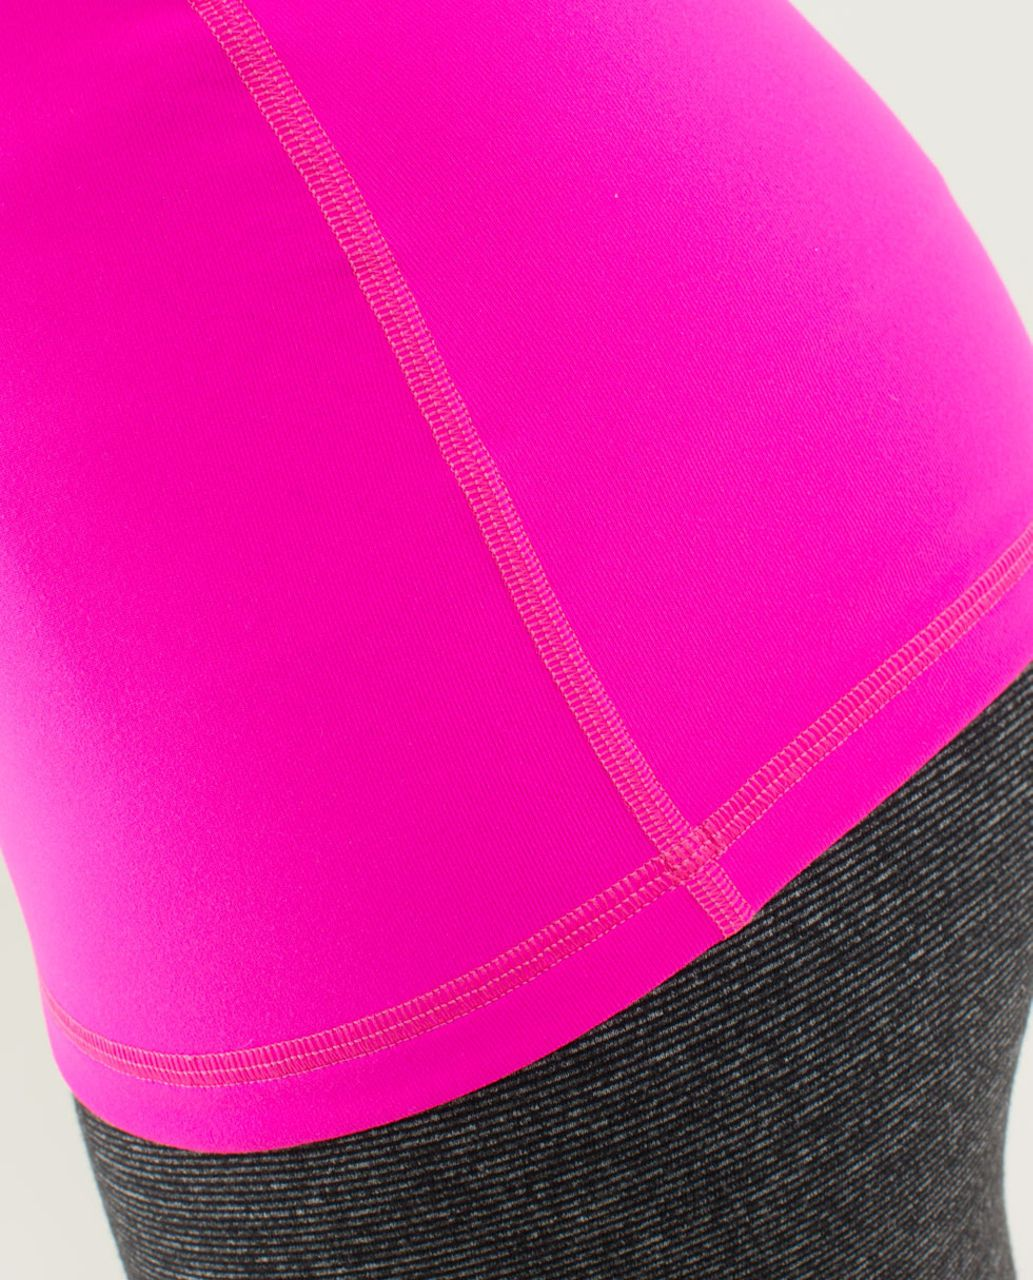 Lululemon Power Y Tank *Luon - Raspberry Glo Light